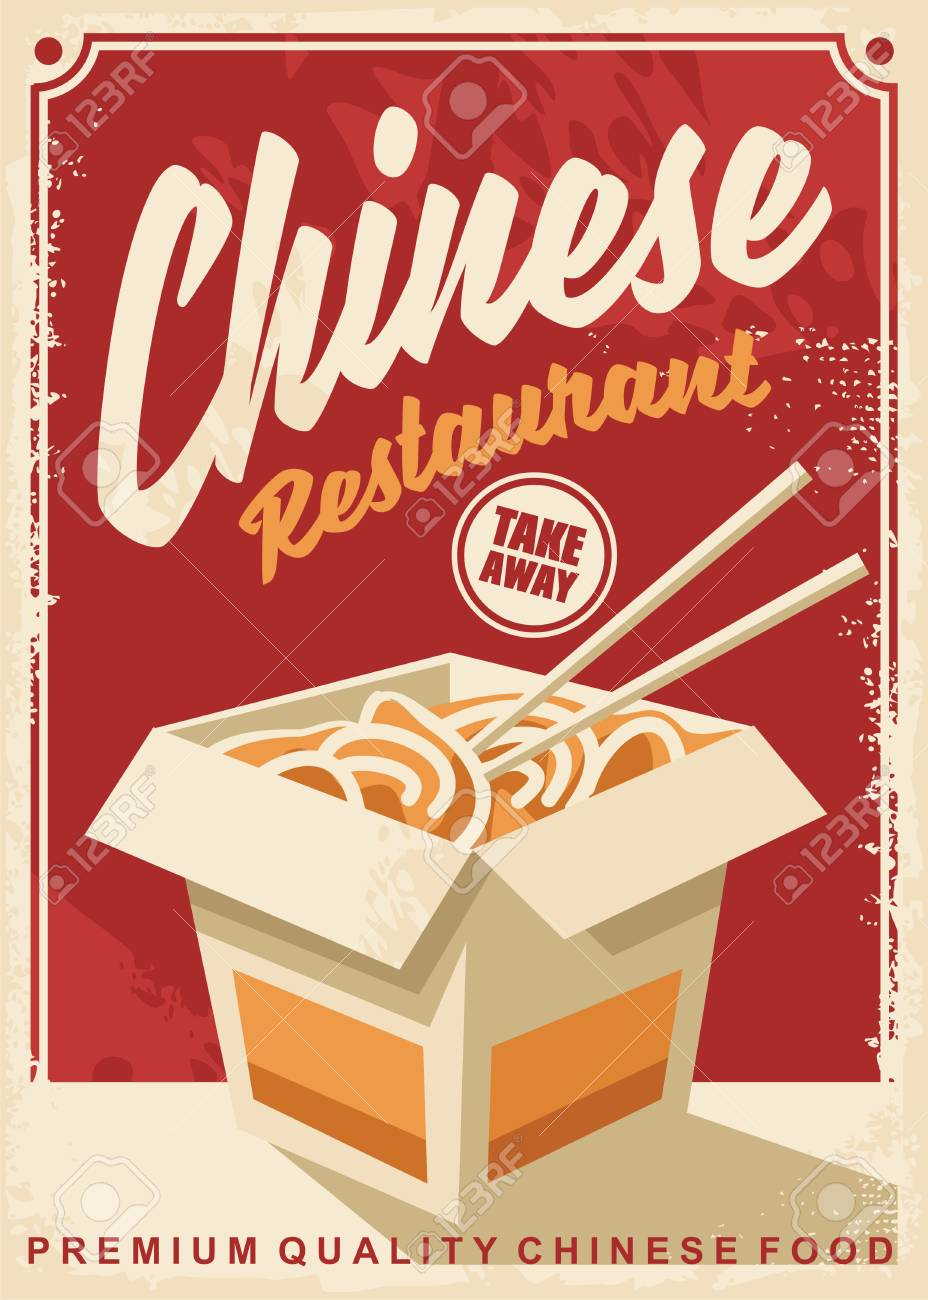 chinese food restaurant retro promotional poster design royalty free